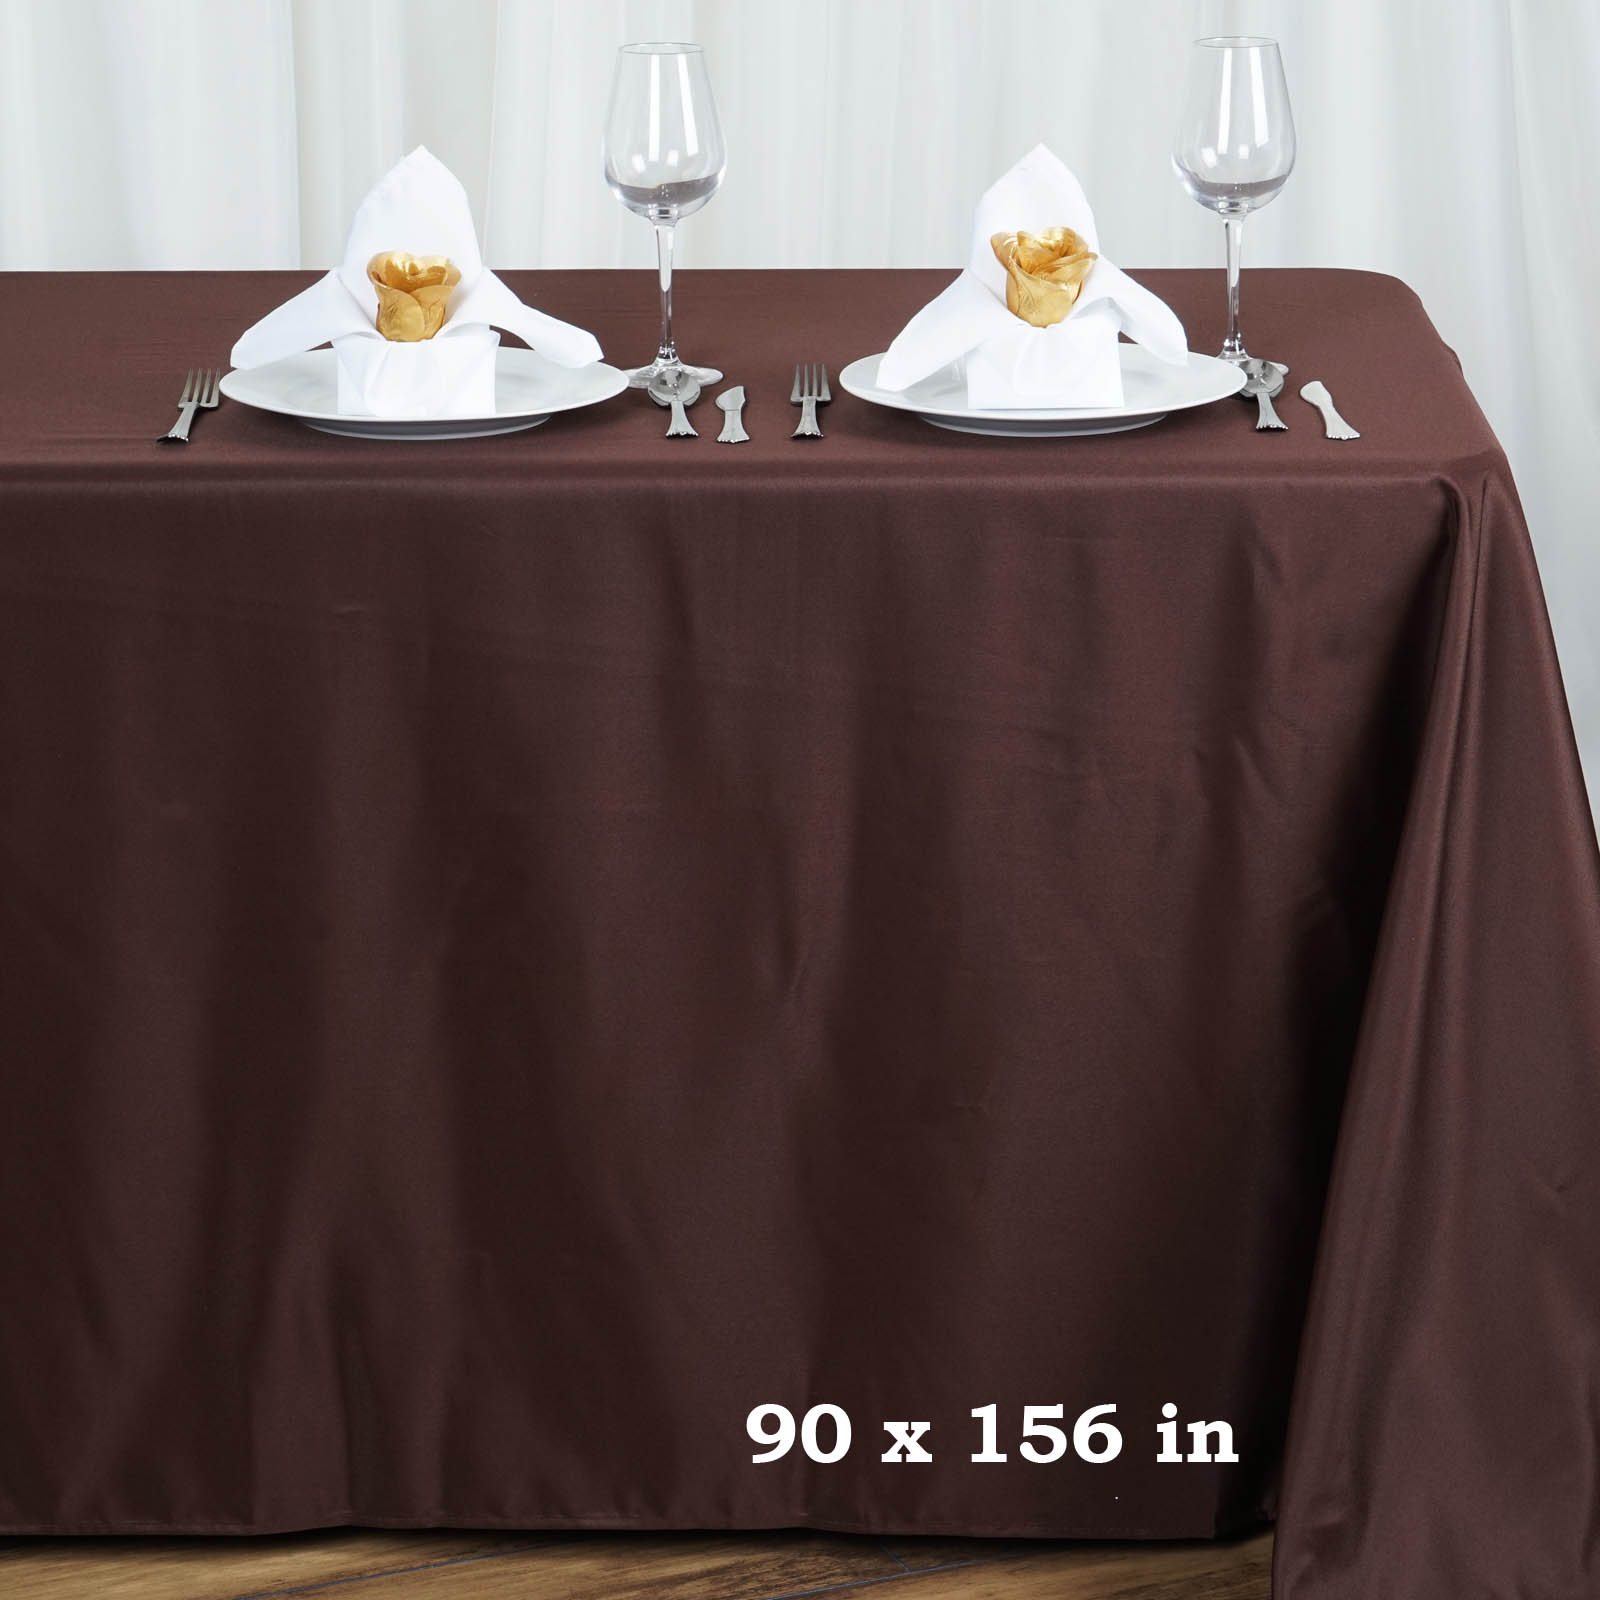 90x156 polyester tablecloth wedding table linens catering for Table linens